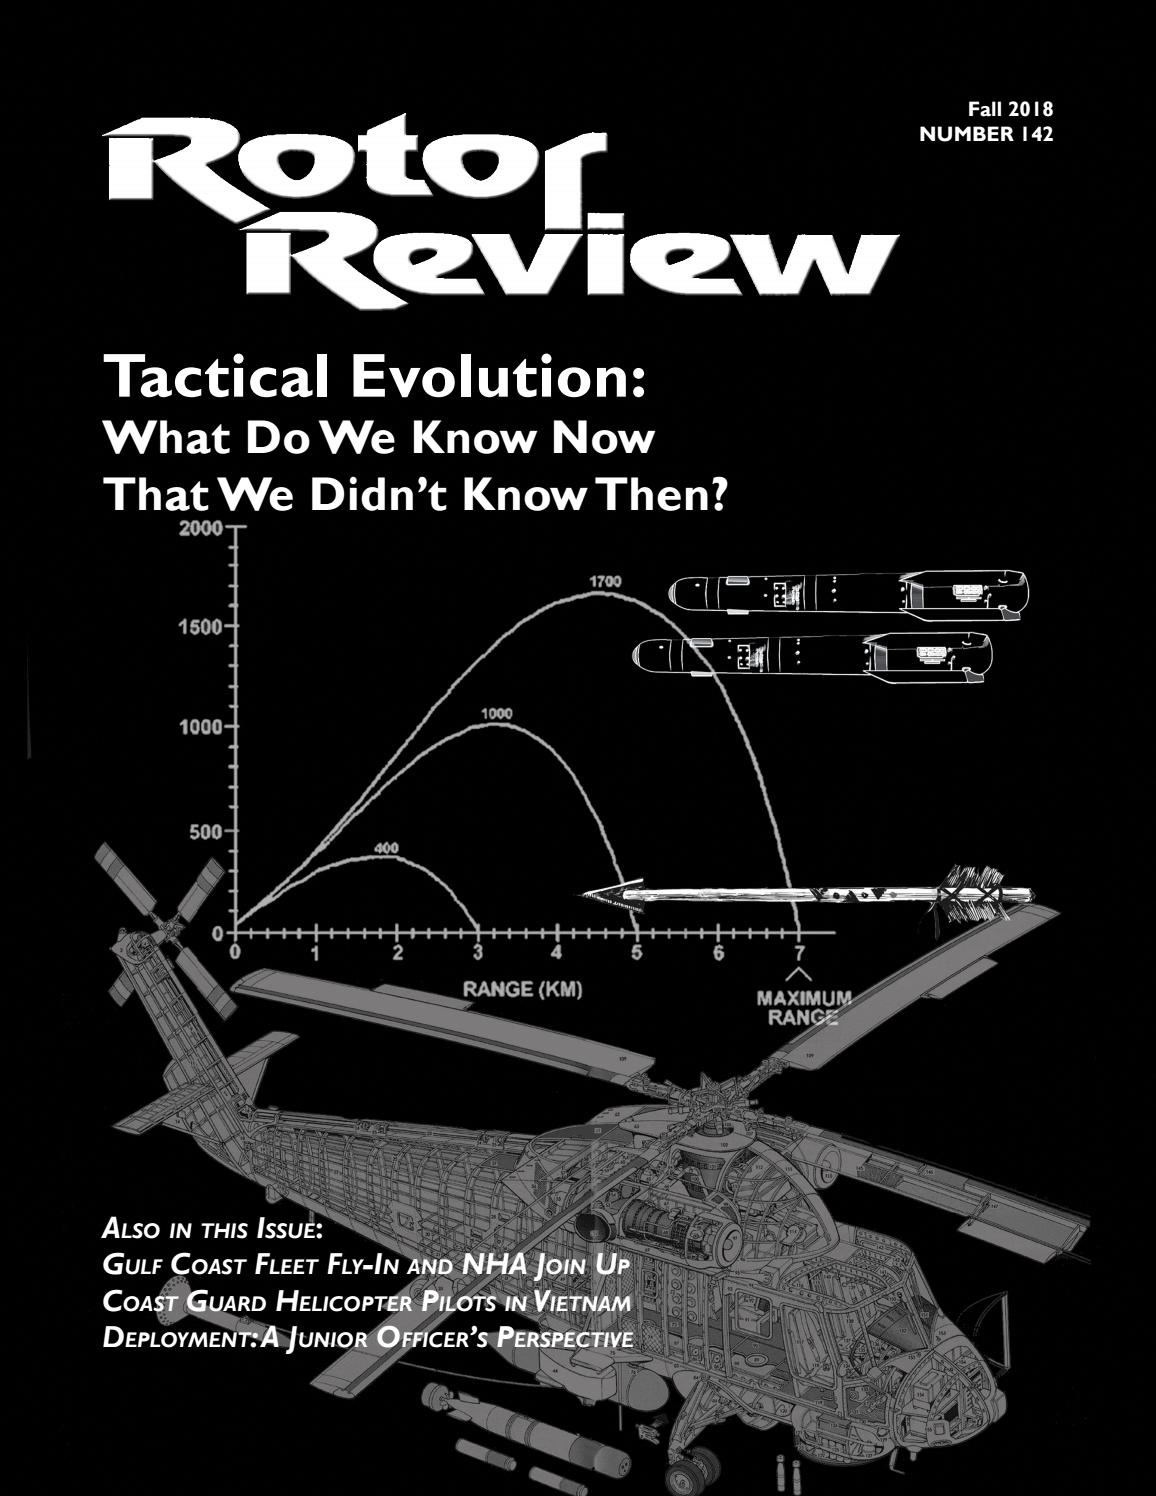 Rotor Review #142 Fall by Naval Helicopter Association, Inc